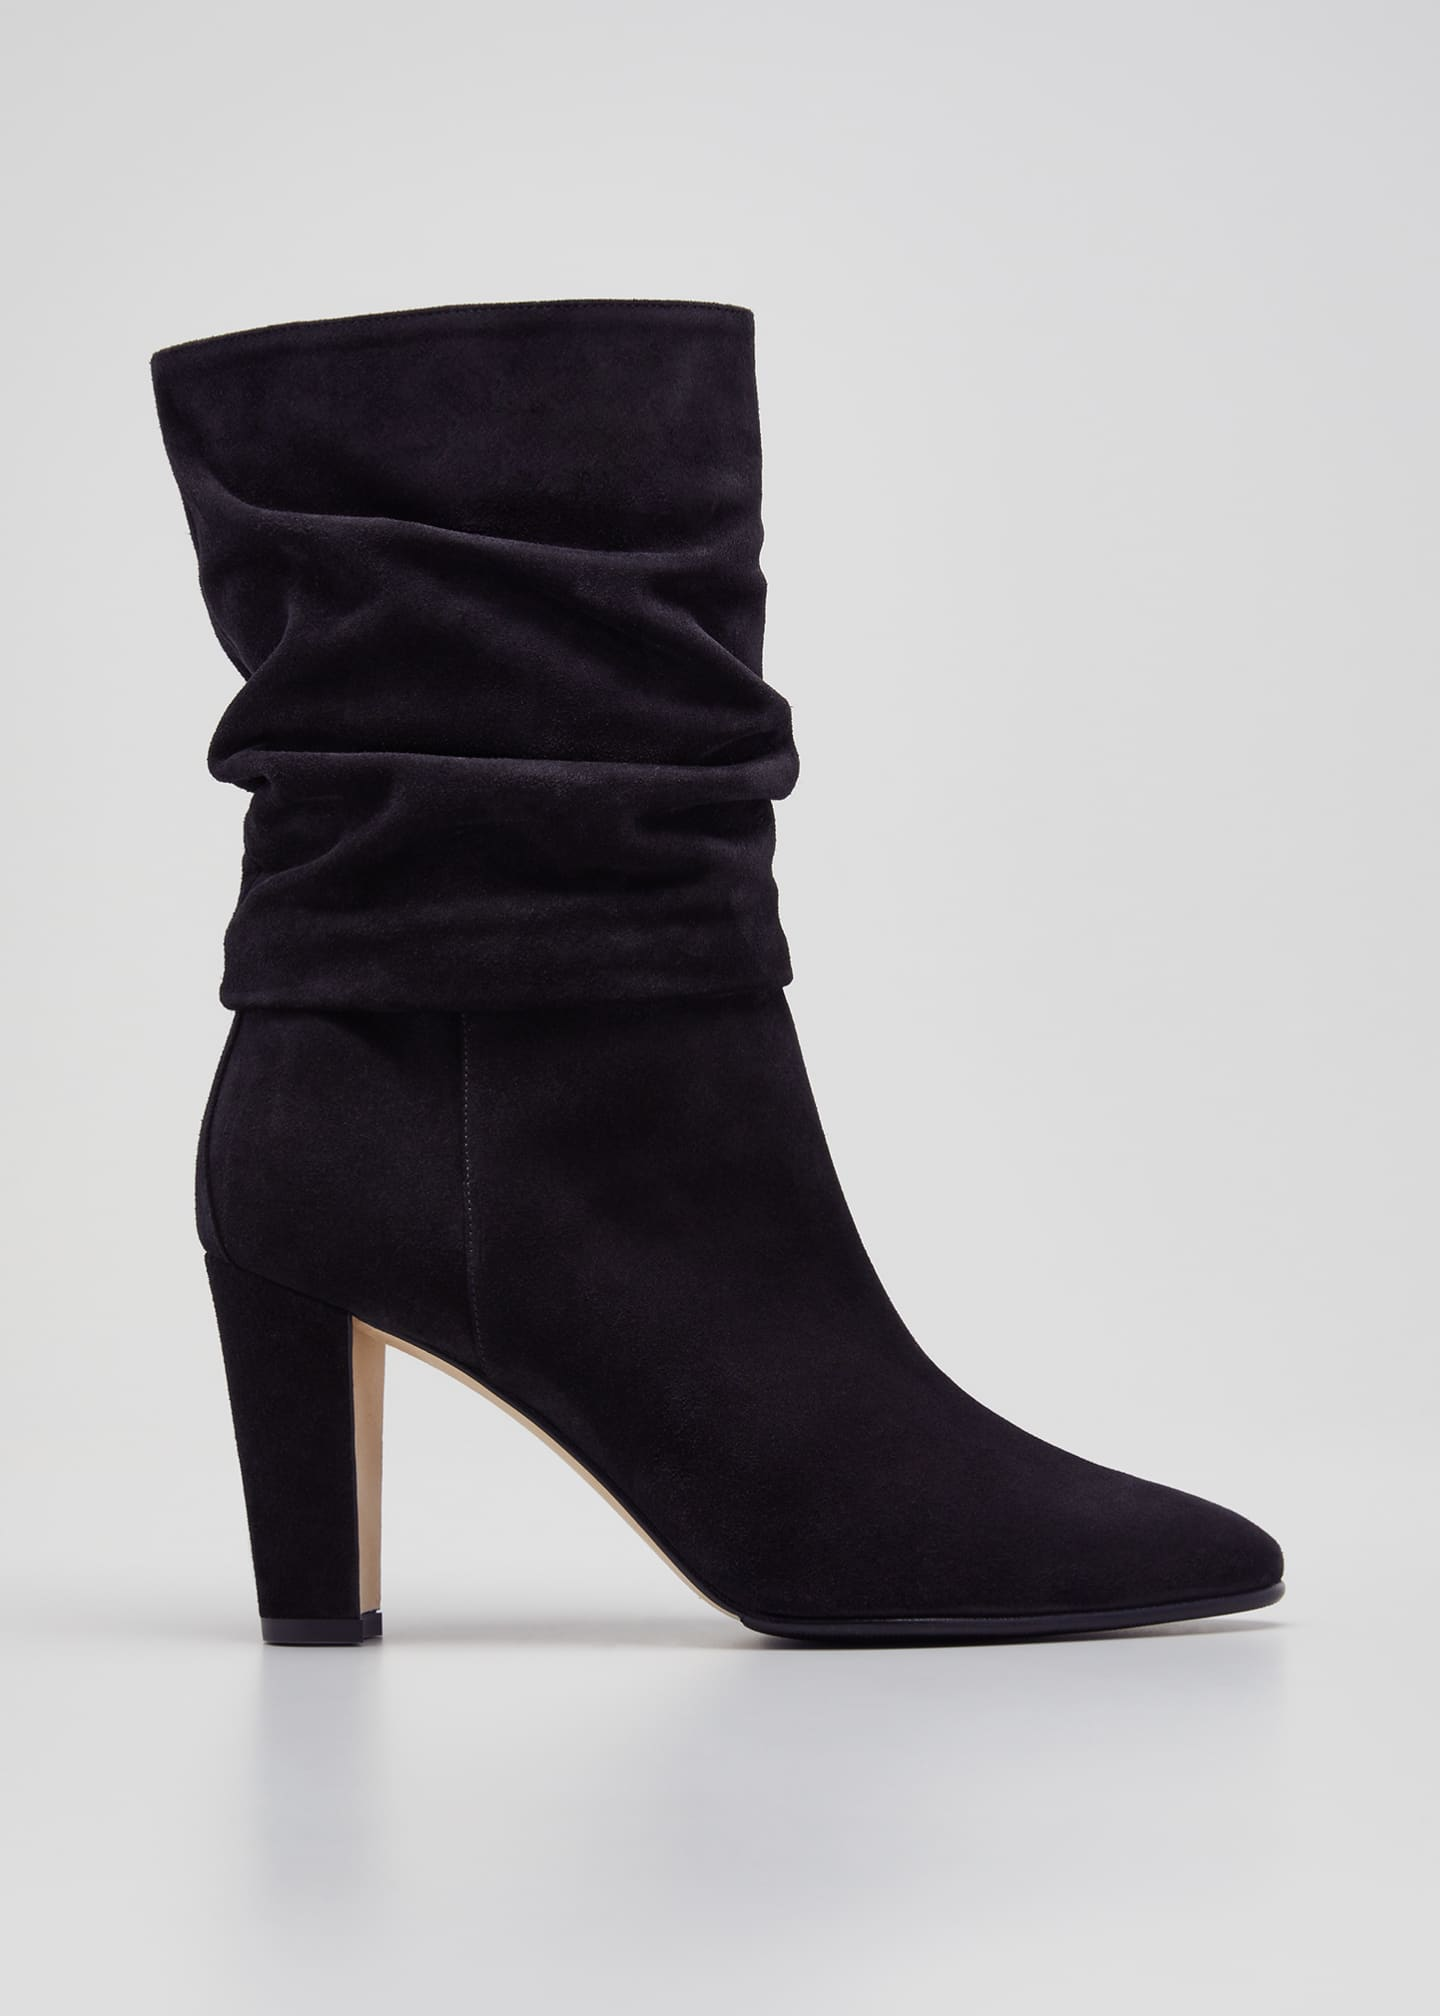 Image 1 of 3: Shushan 90mm Suede Scrunch Boots